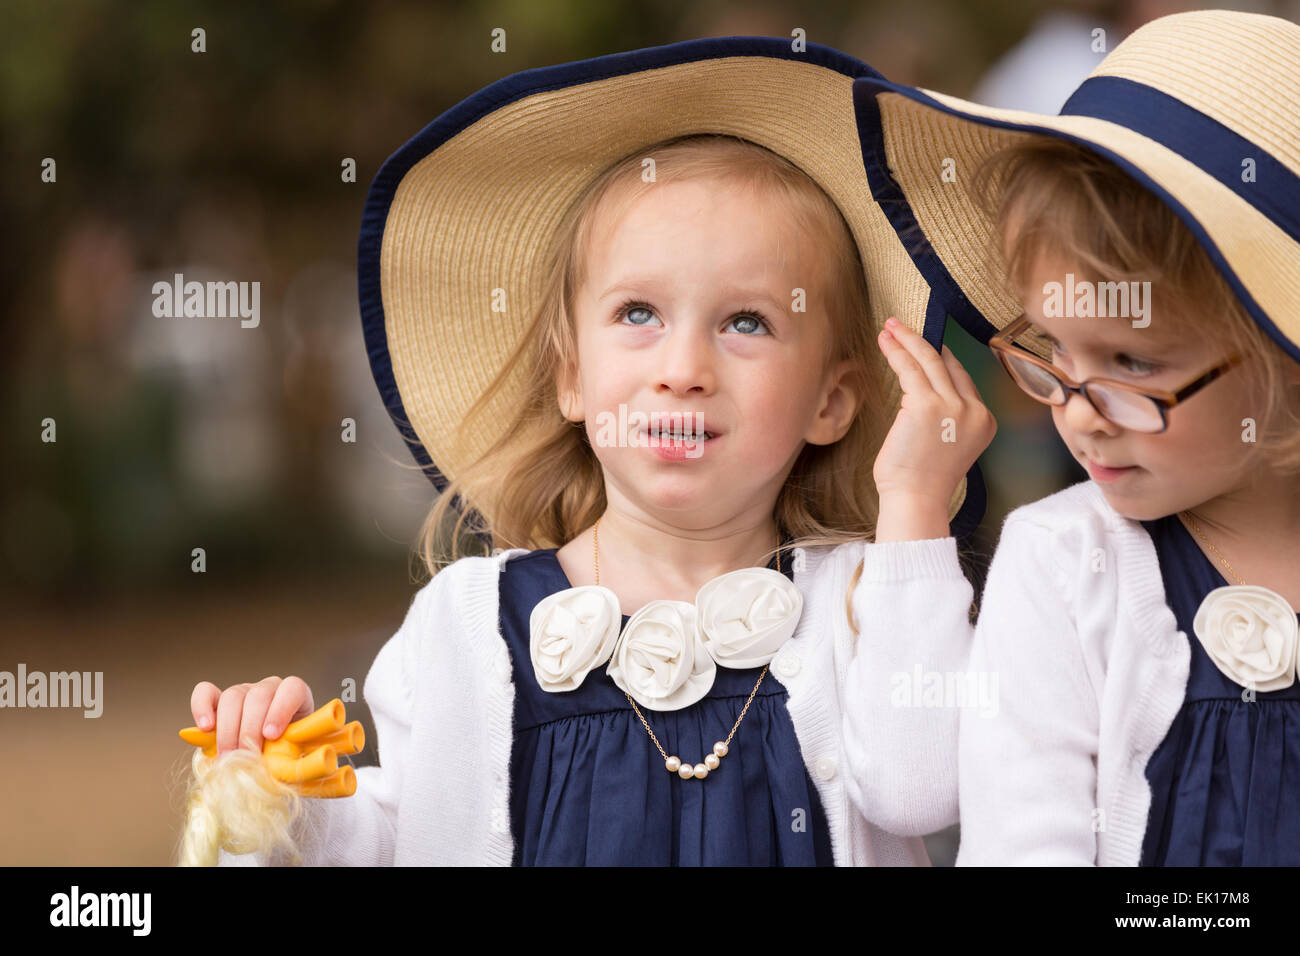 Charleston, South Carolina, USA. 04th Apr, 2015. A group of young triplets in their Easter finery during the annual - Stock Image